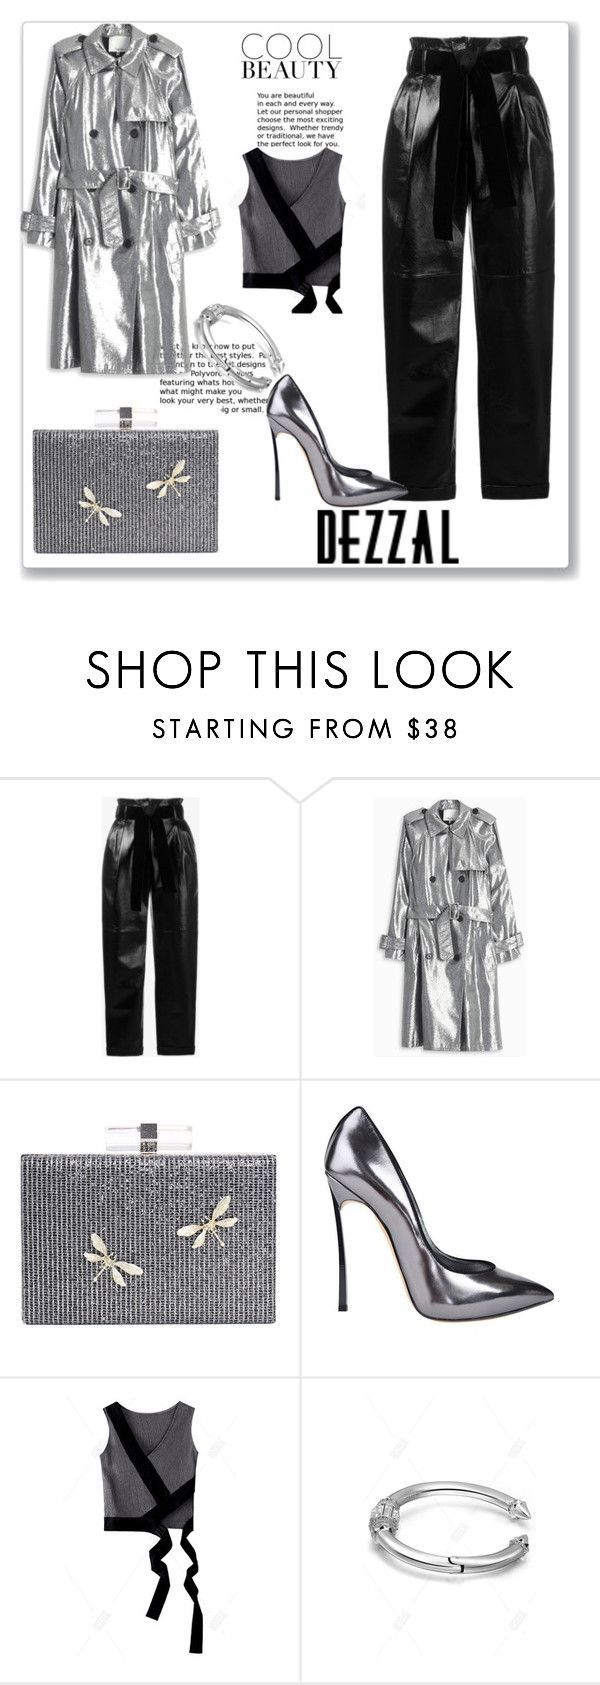 """""""SPECIAL FASHION CHALLENGE: Style given DEZZAL"""" by followme734 ❤ liked on Polyvore featuring Philosophy di Lorenzo Serafini, 3.1 Phillip Lim, Casadei, POL and dezzal"""